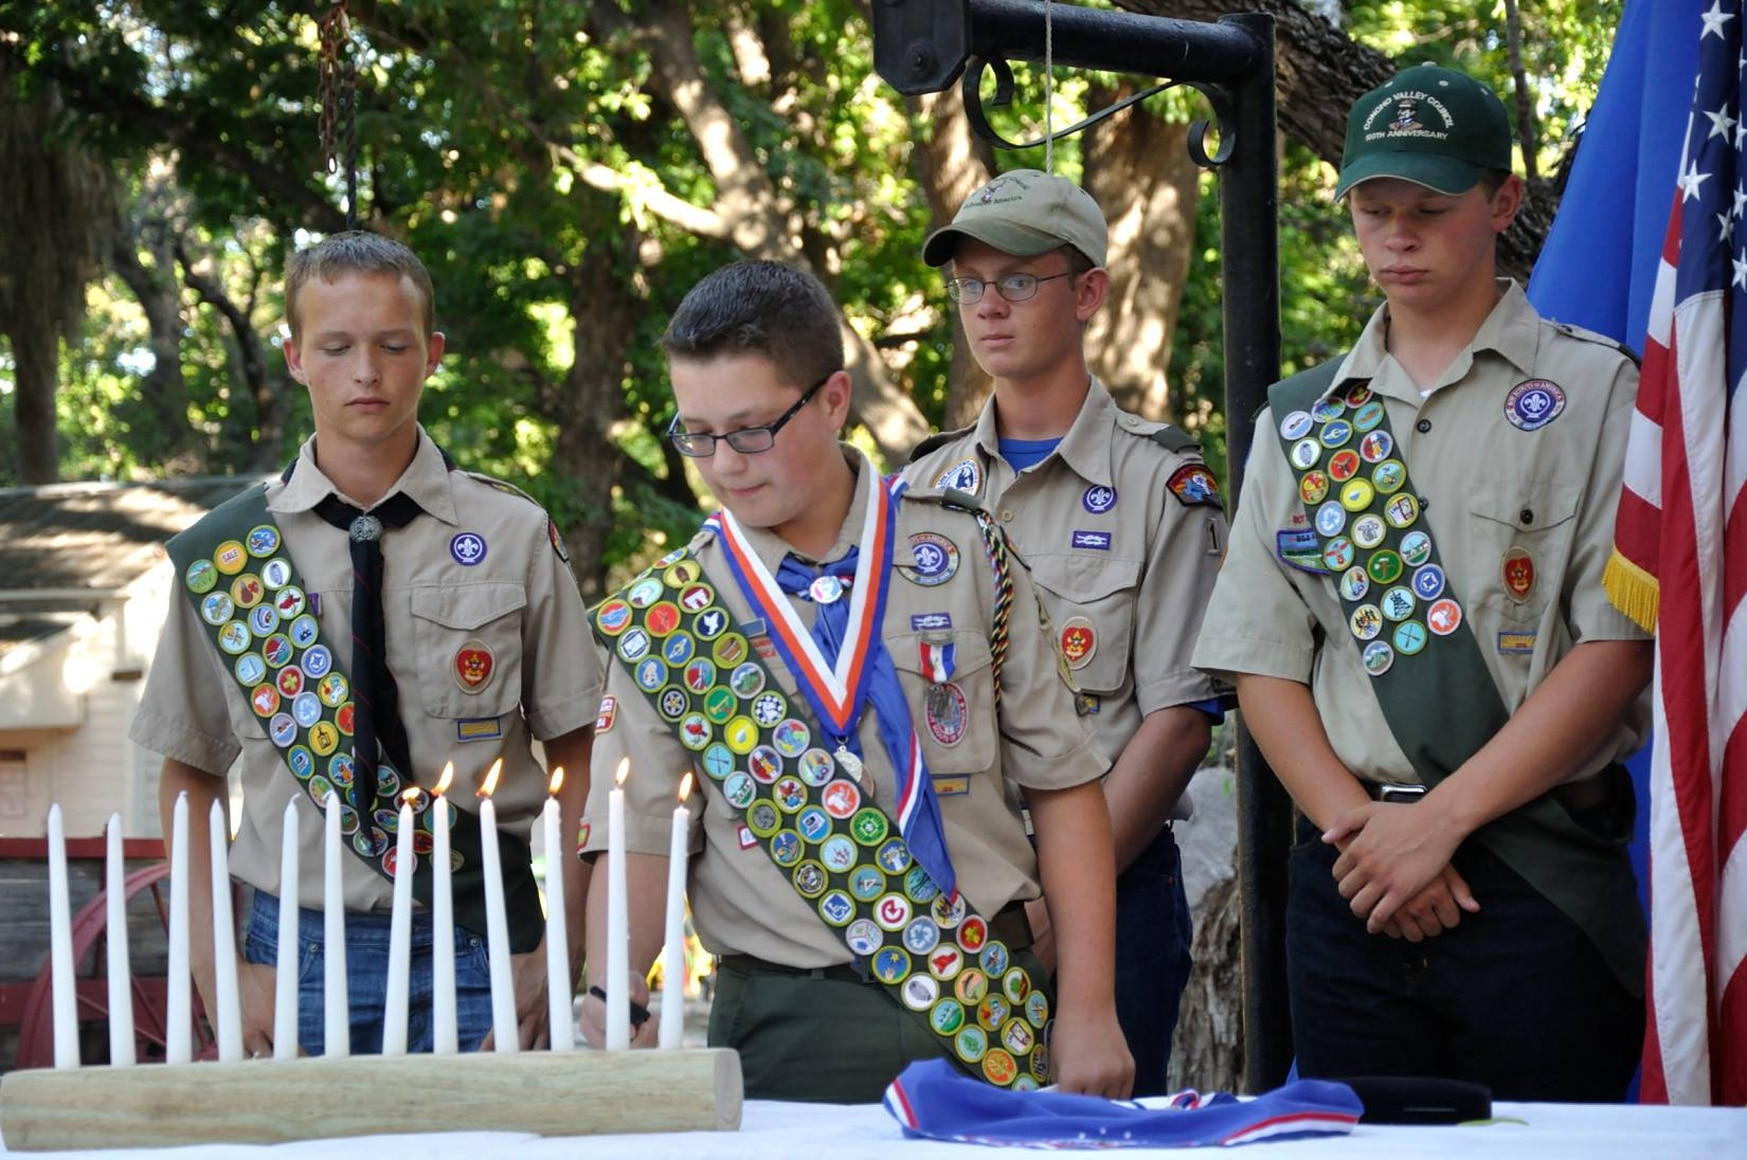 Benjamin Rawald commences an Eagle Scout ceremony at the Whitehead Museum in Del Rio, Texas, Aug. 7, 2016. One of his biggest achievements, finishing the tasks required to receive his Boy Scout's exploring merit badge, means Rawald has completed and attained every possible Boy Scout badge currently available. (Air Force)